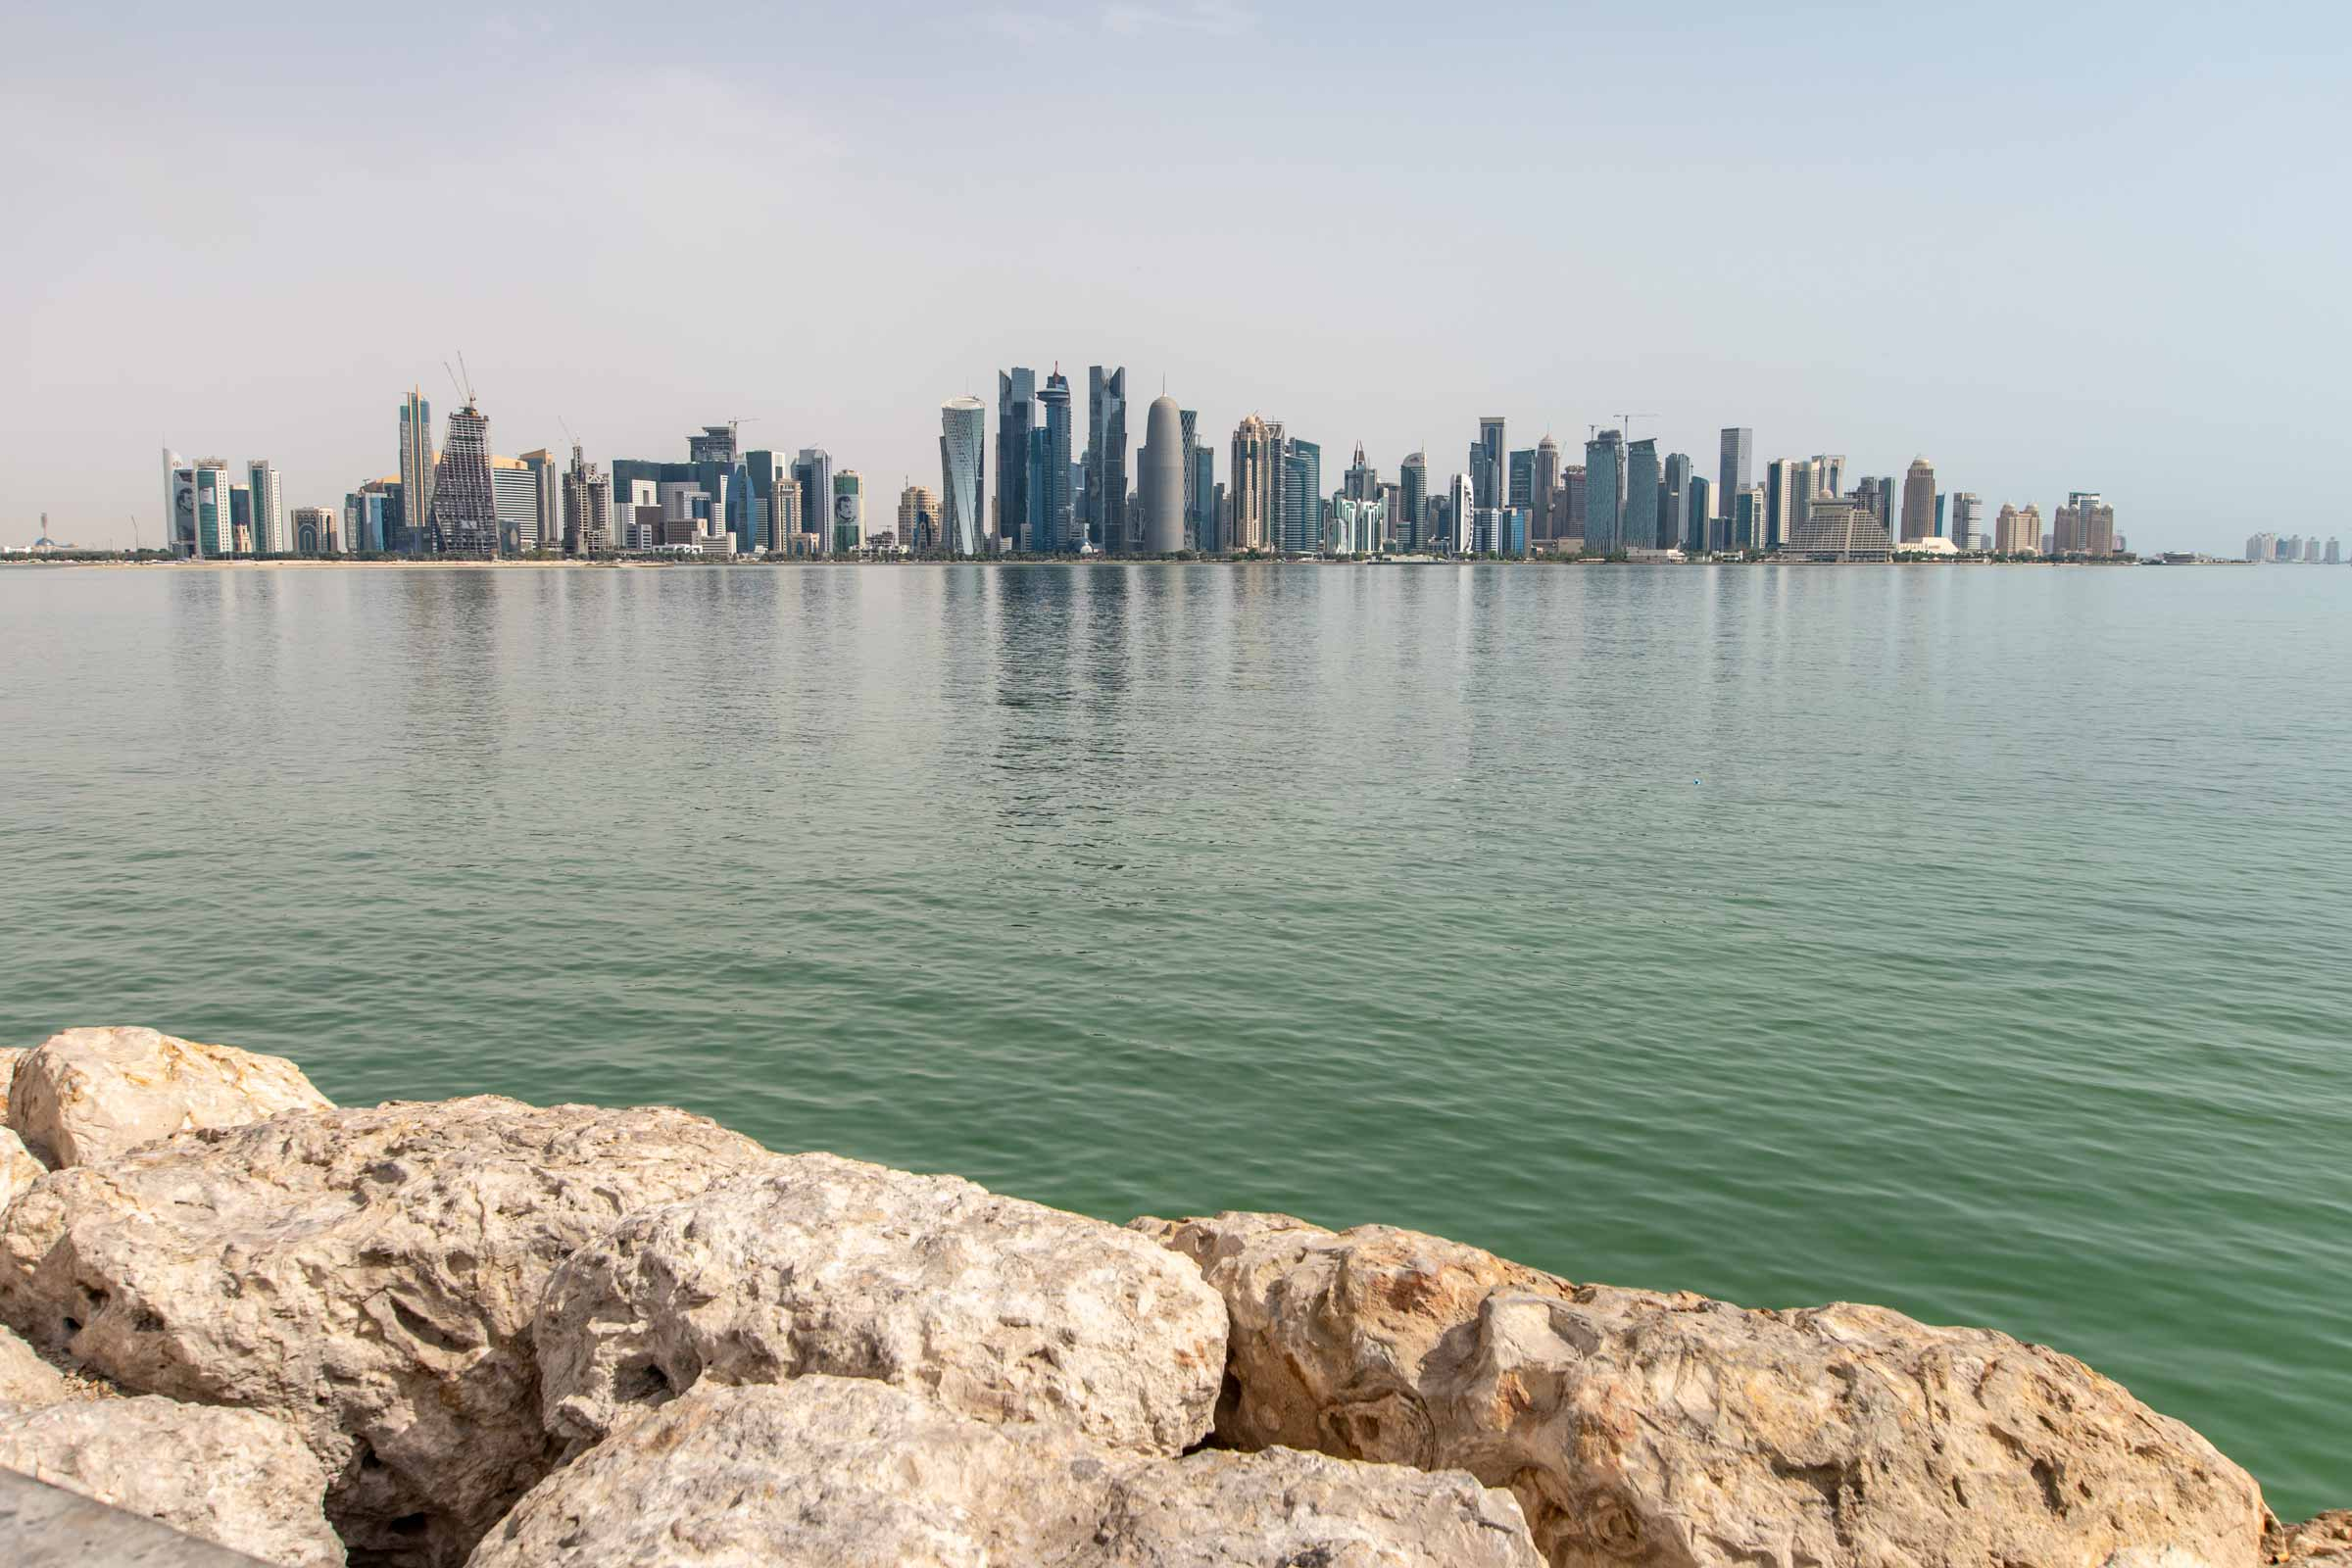 Top 10 Interesting Facts About Qatar That Will Awake Your Curiosity